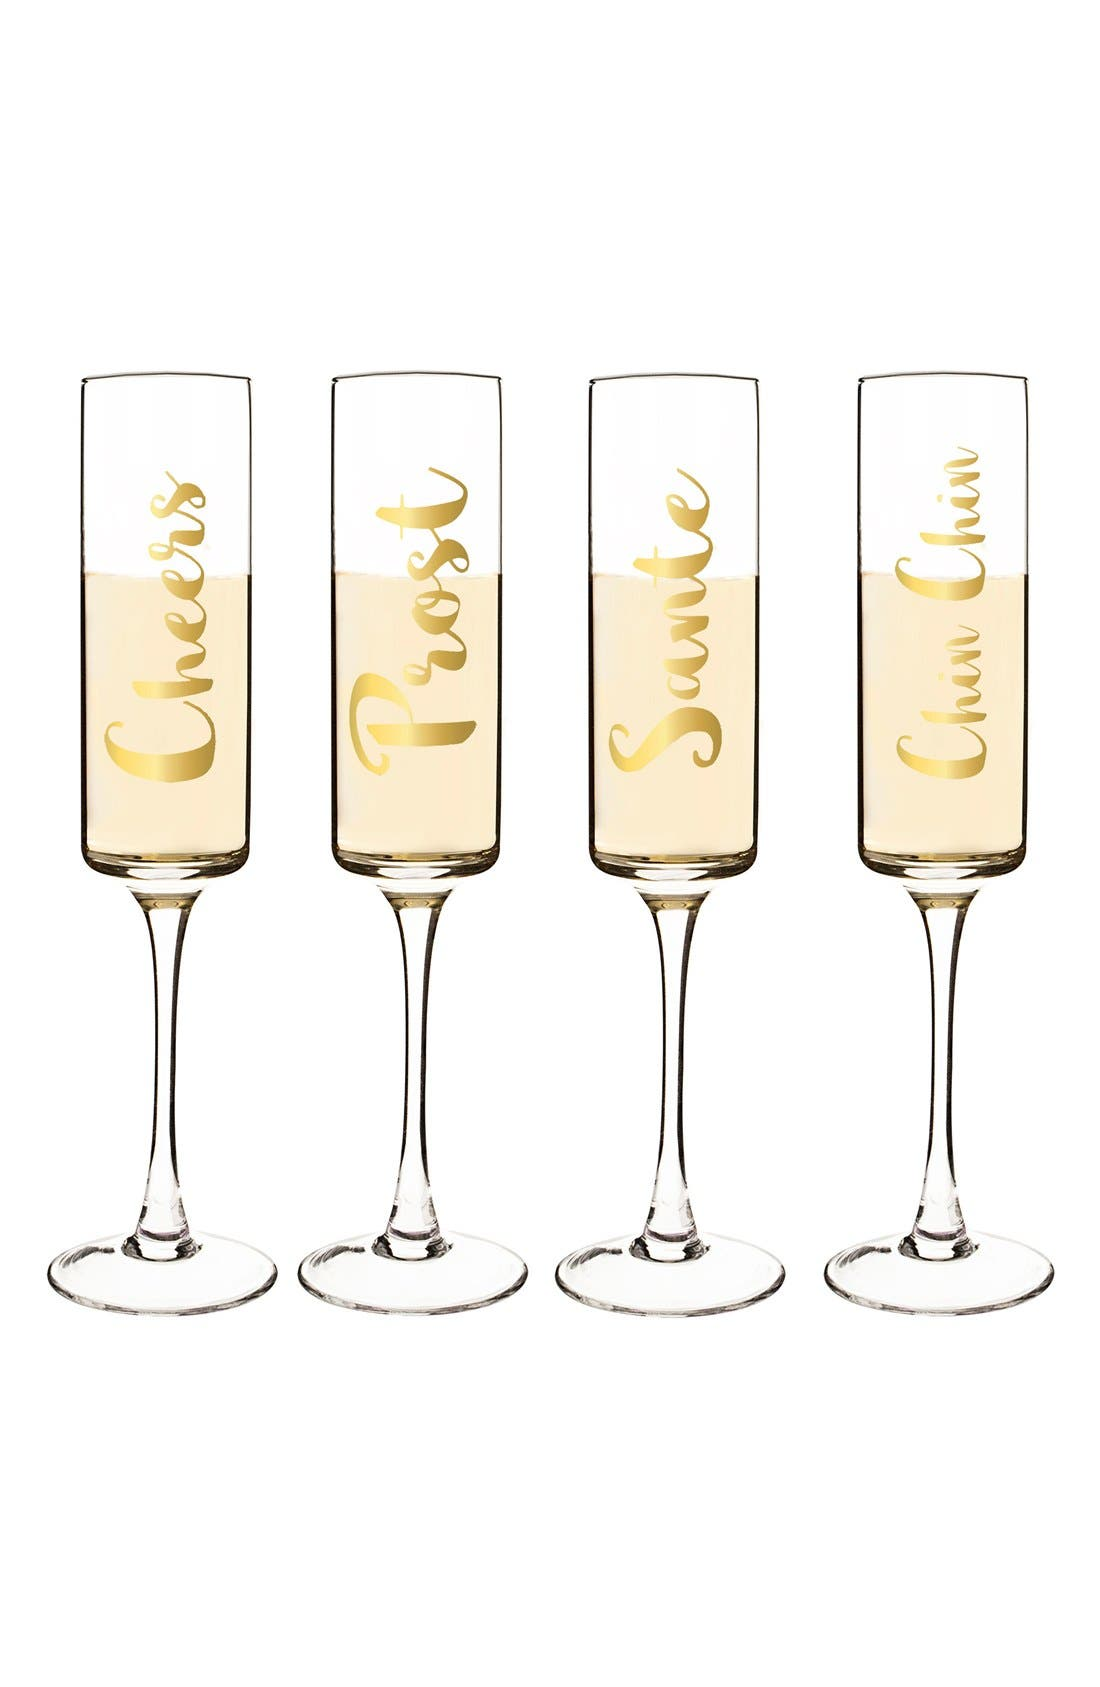 Cathy's Concepts 'Cheers' Champagne Flutes (Set of 4)